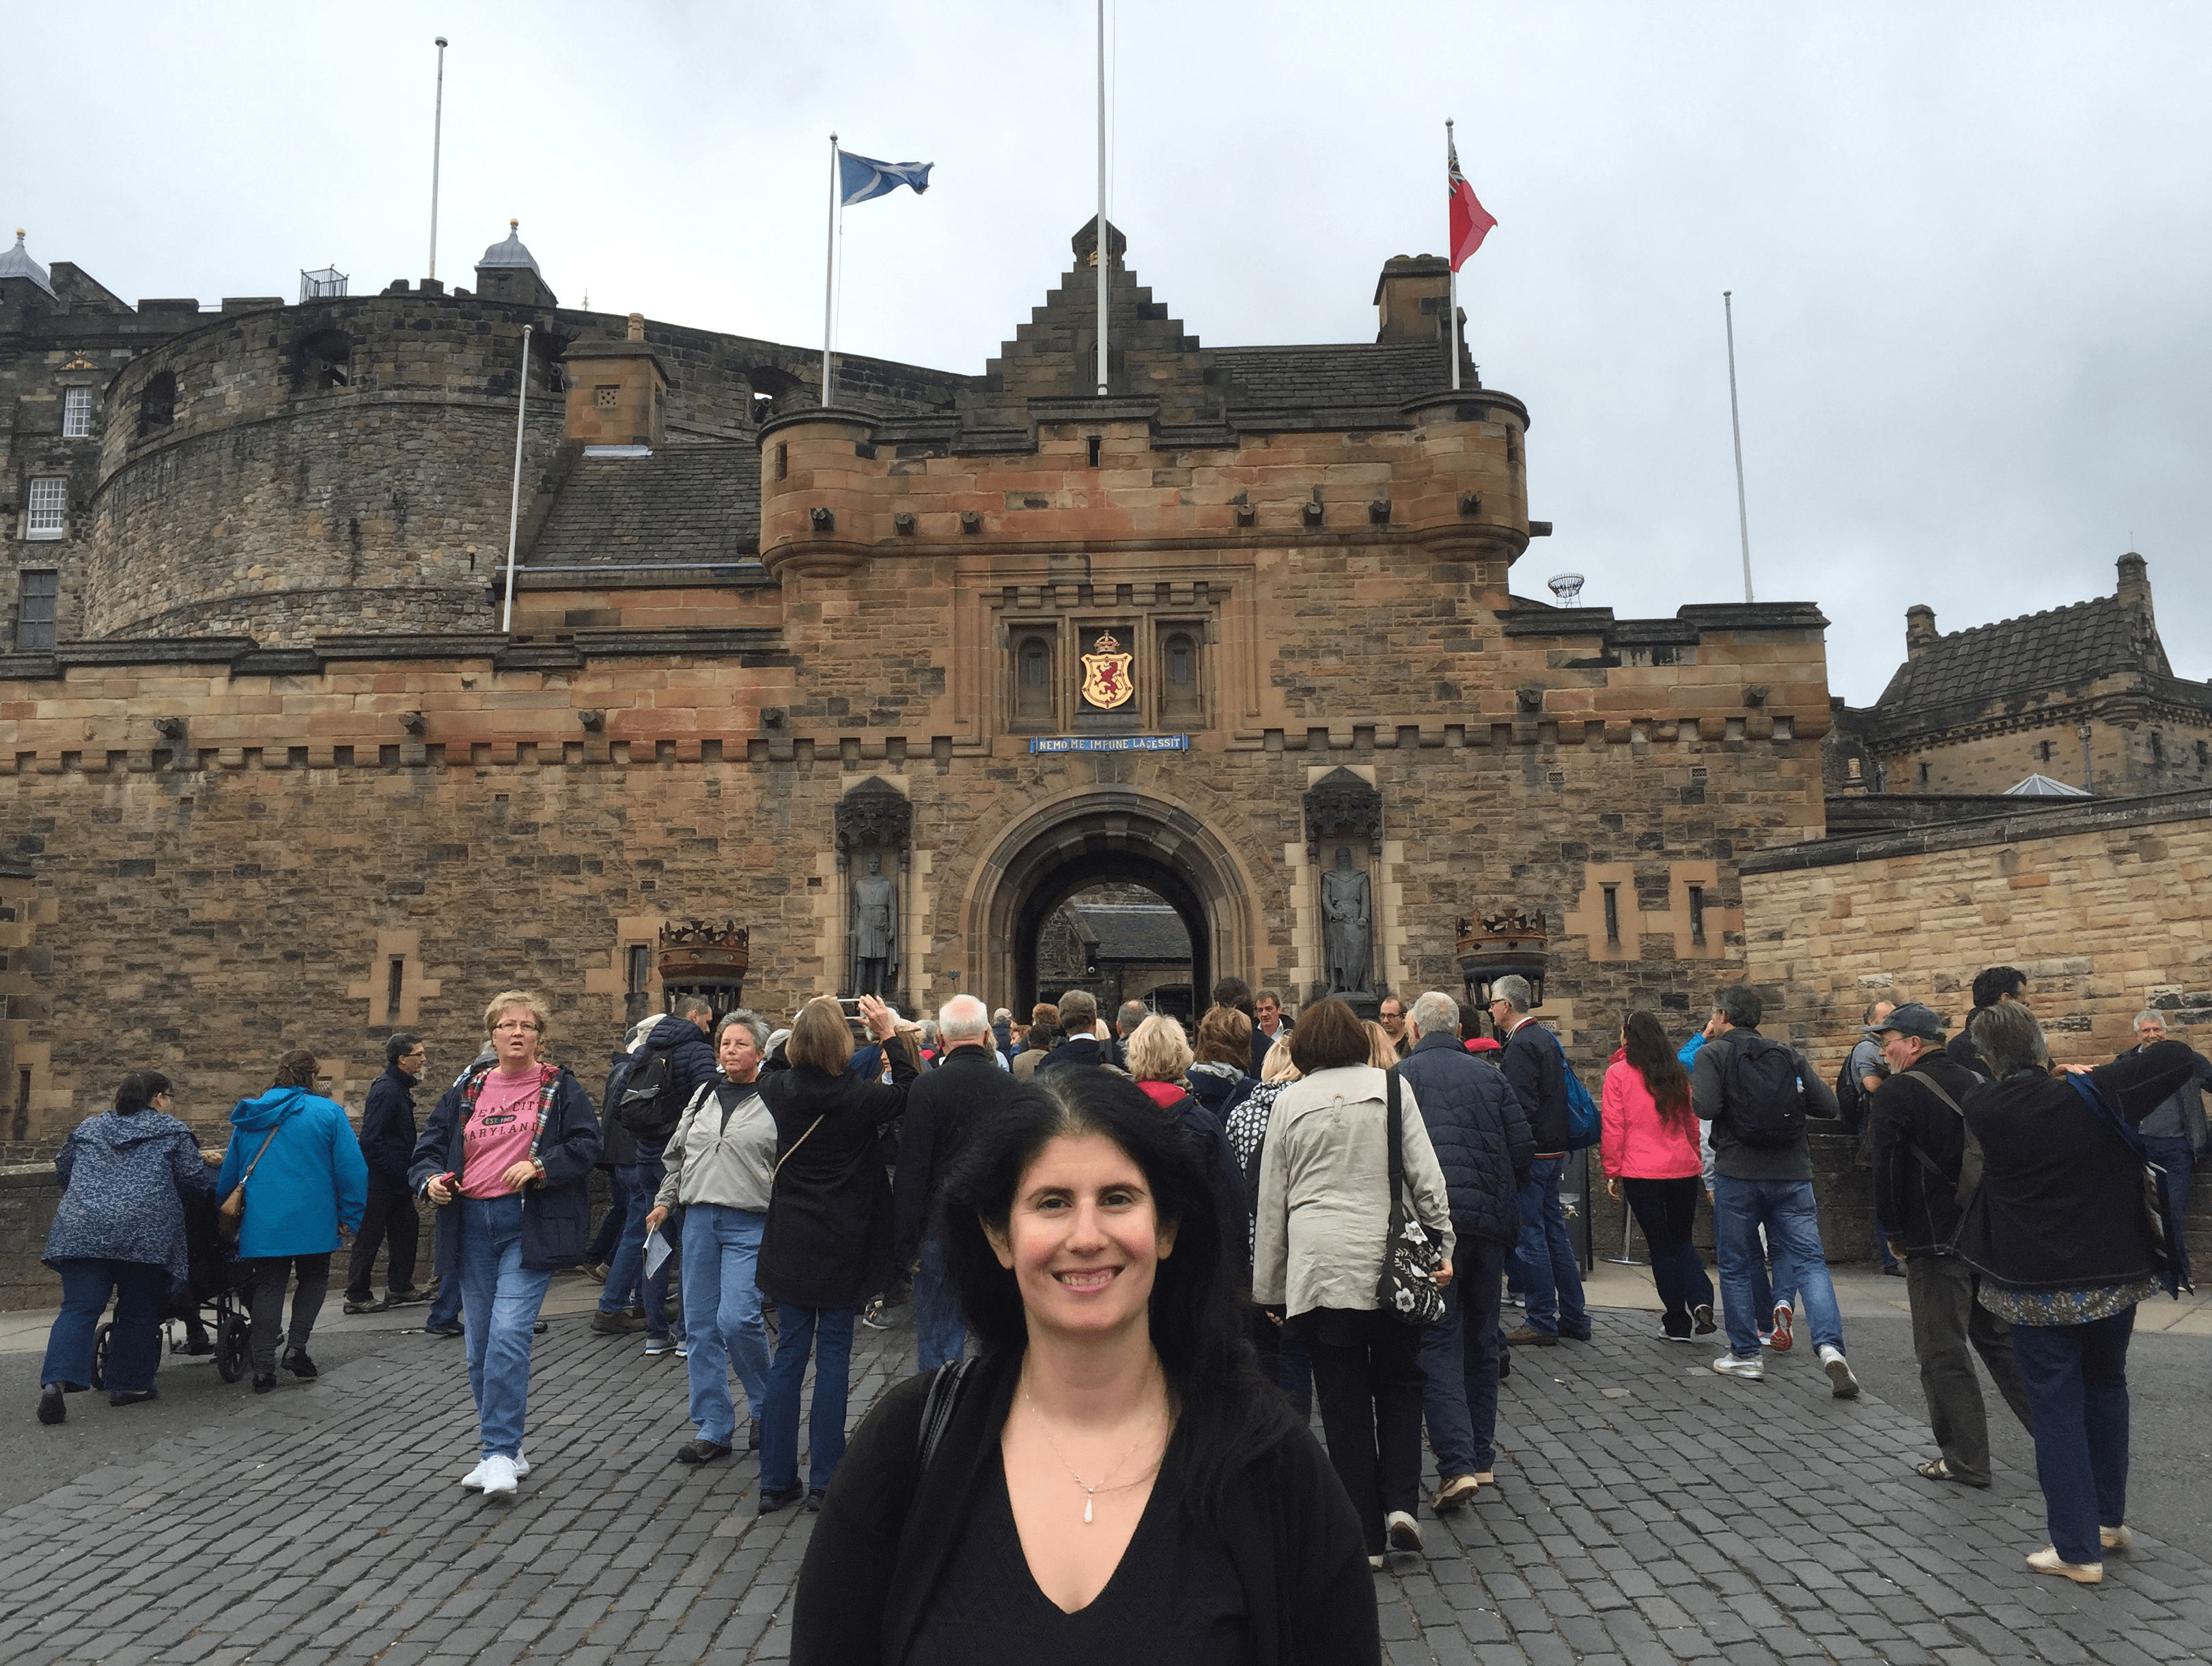 Anisa in front of the entrance to Edinburgh Castle. -